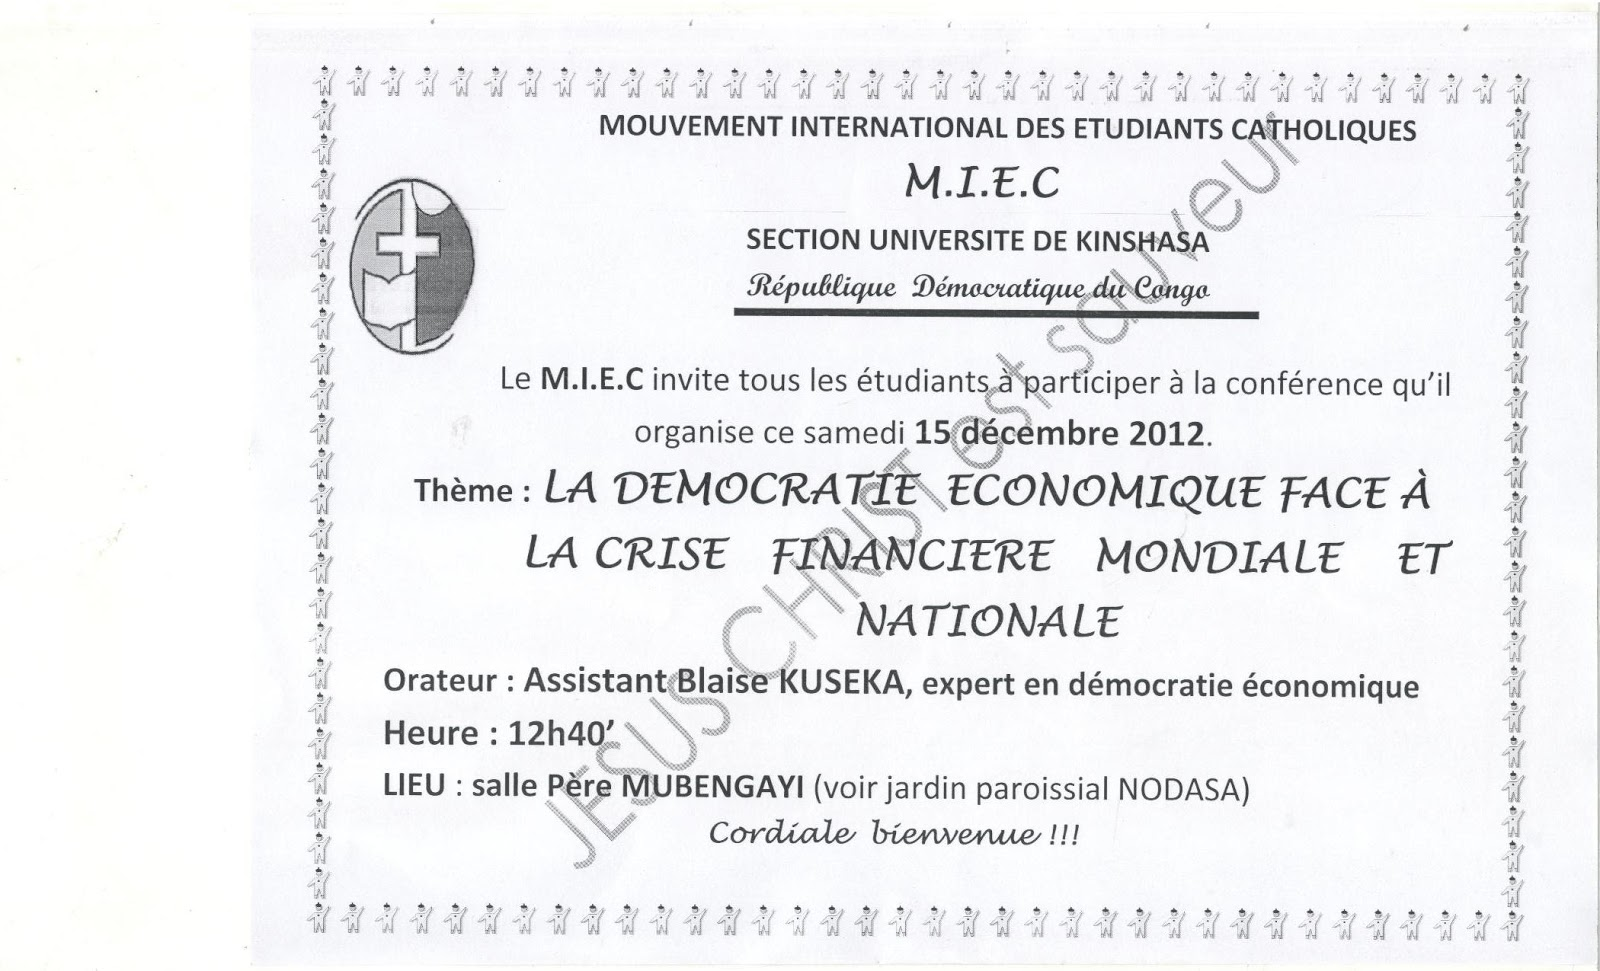 Invitation, Kinshasa, 15.12.2012, 12h40